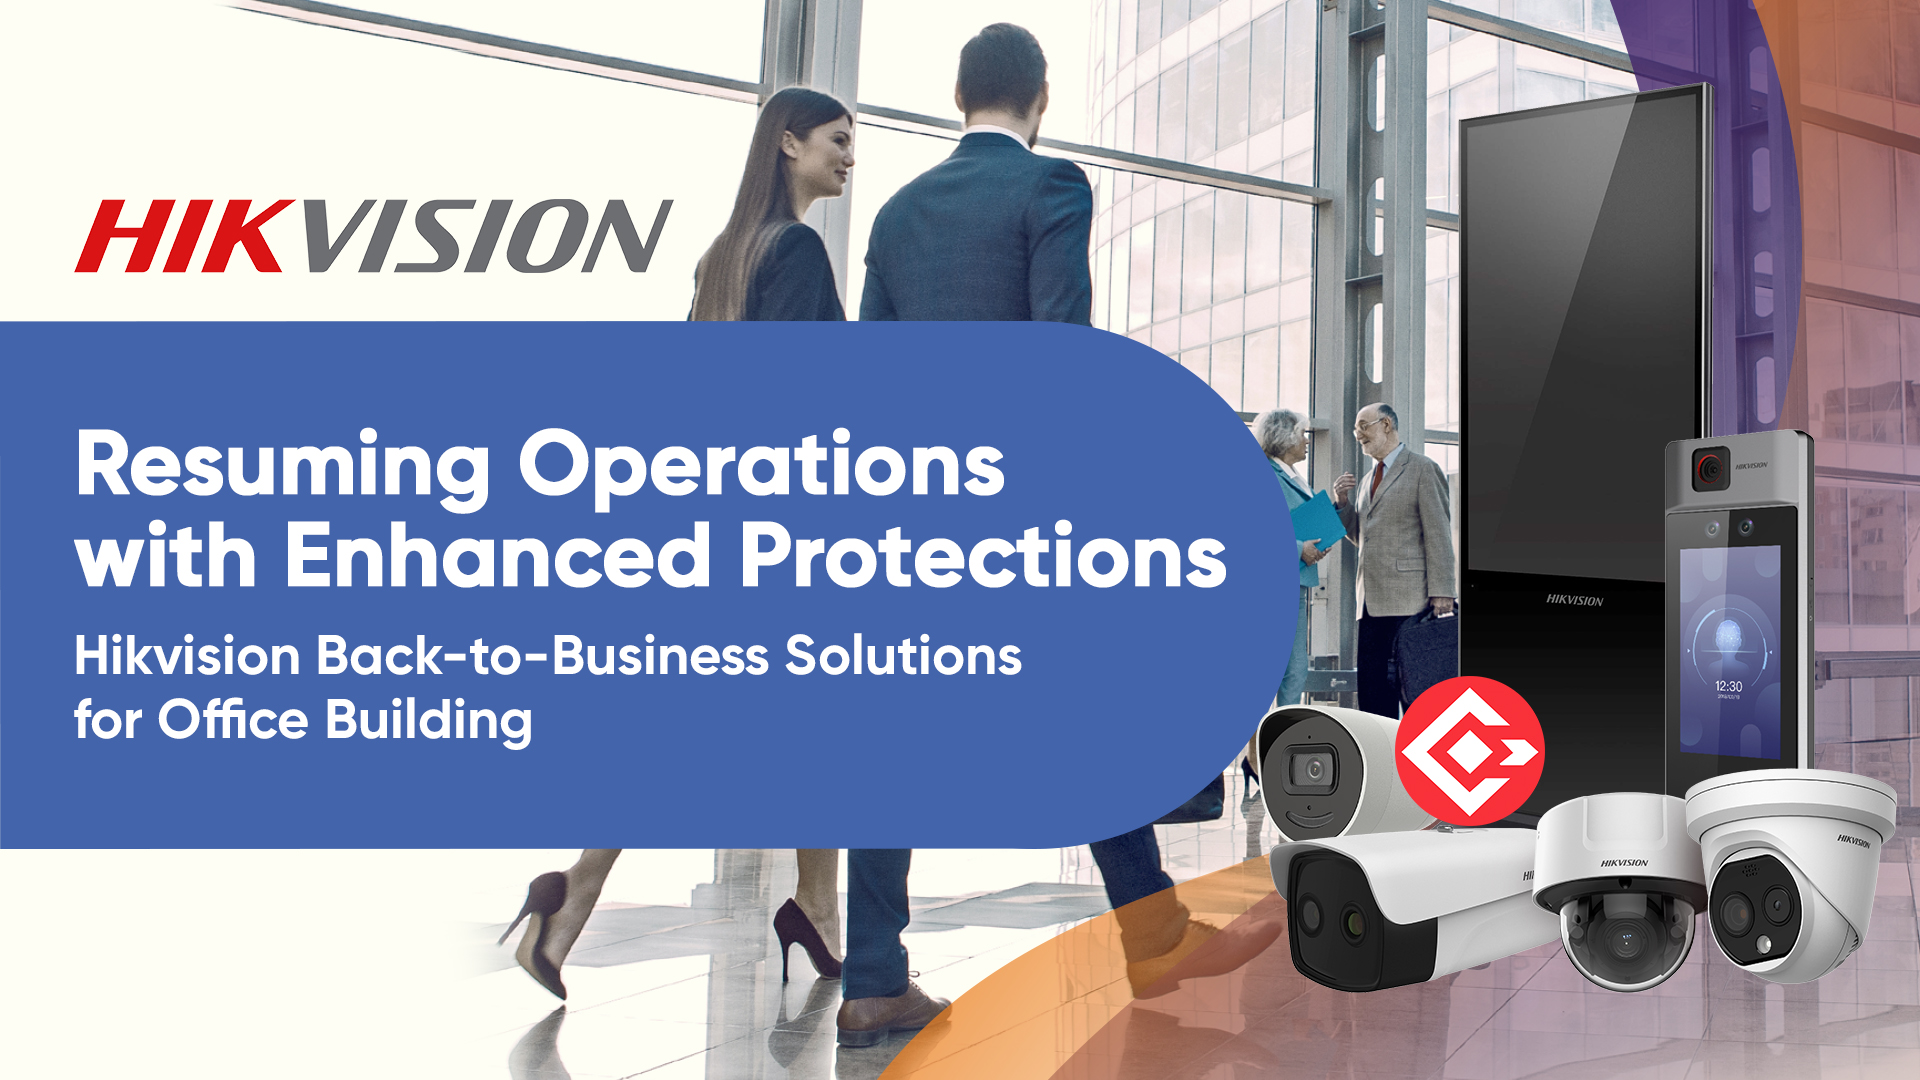 Hikvision Back-to-Business Solutions for Offices